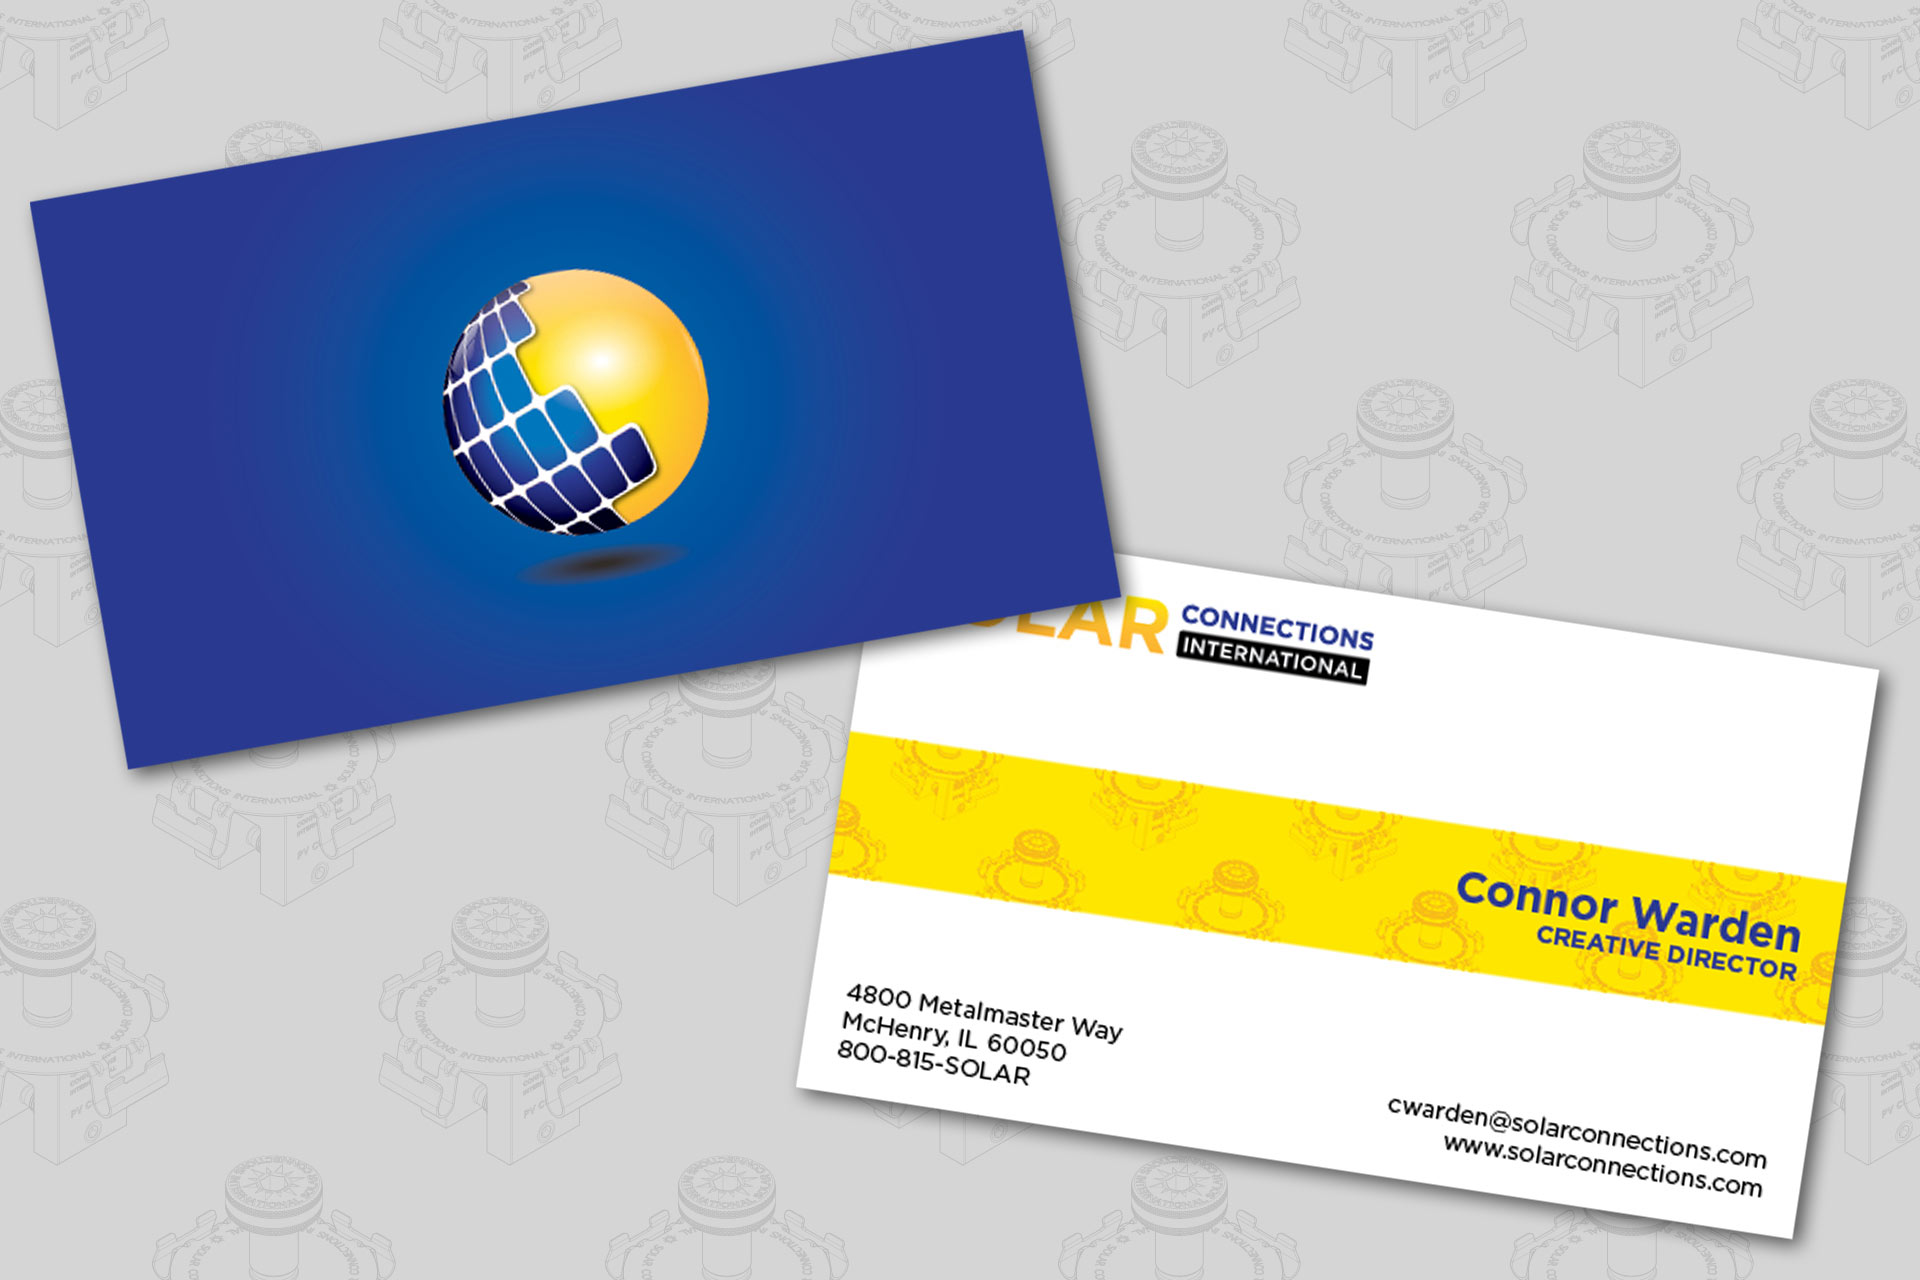 Solar connections business cards connor warden leave a reply cancel reply colourmoves Image collections